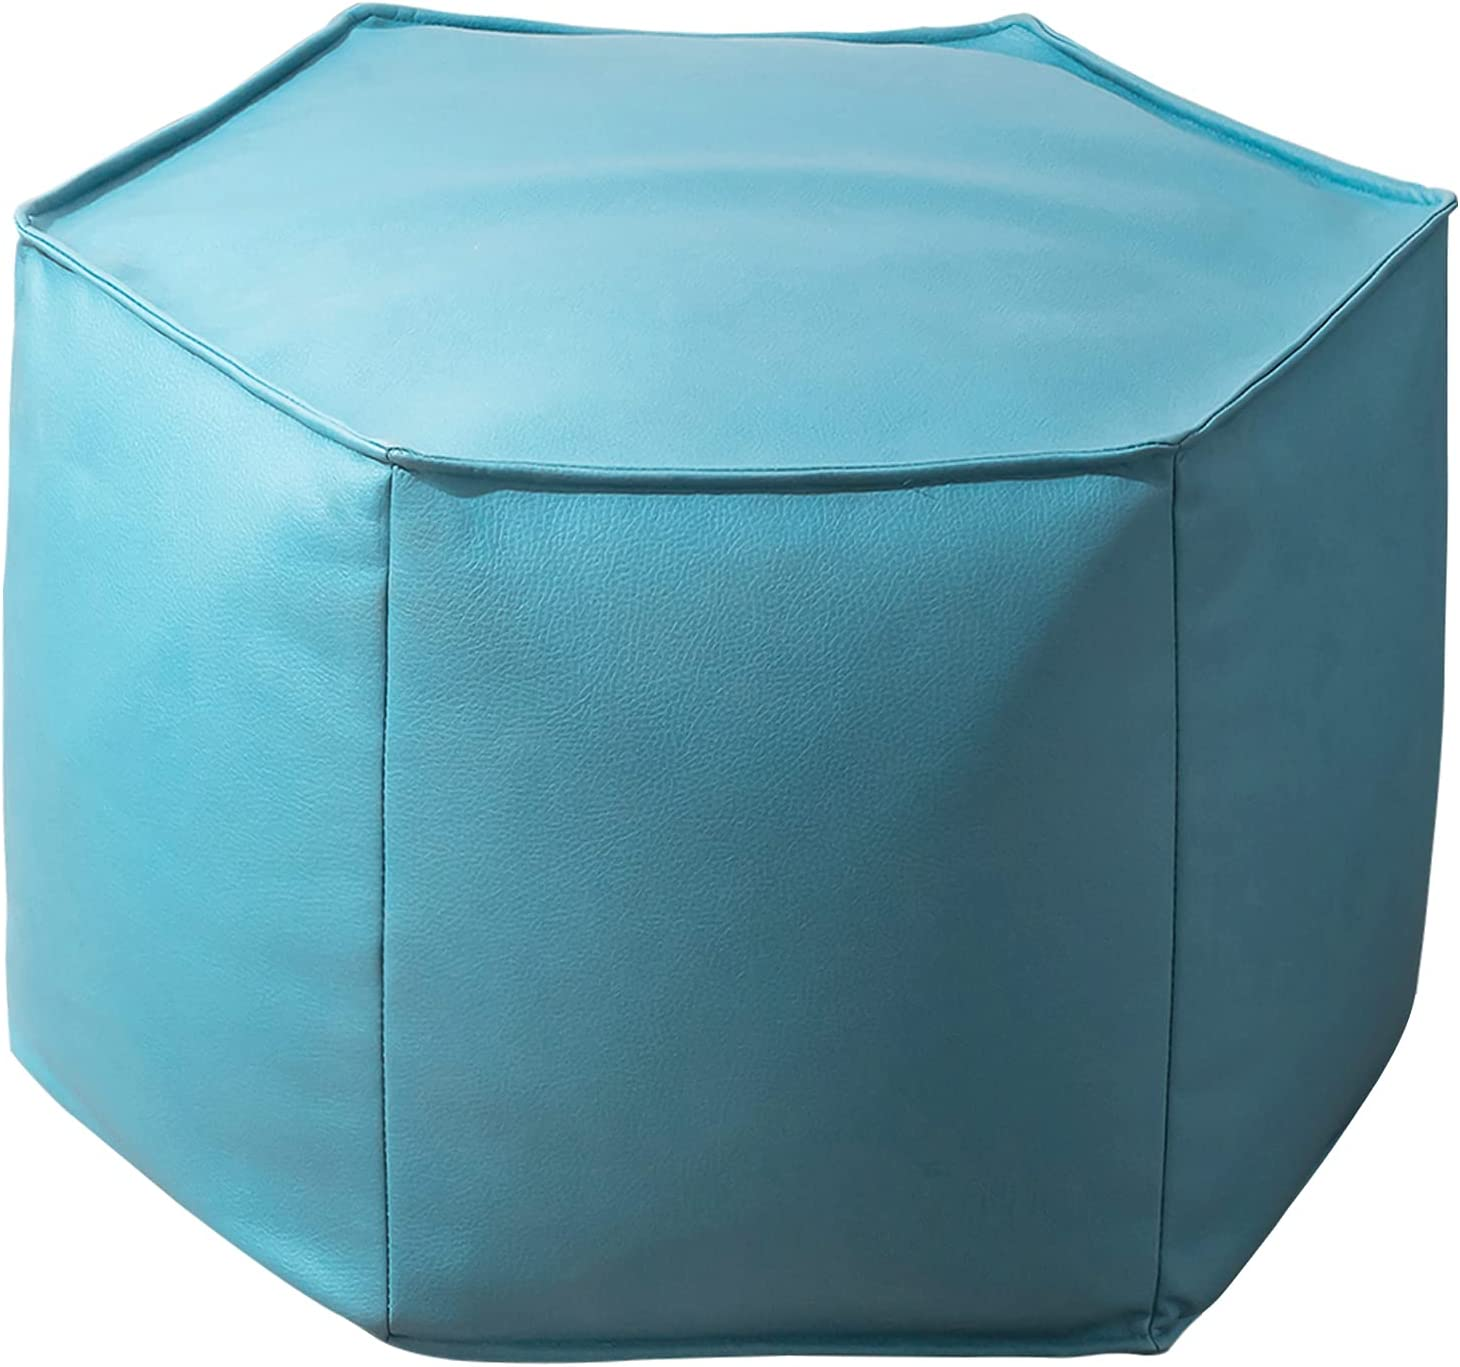 Online limited product HIGOGOGO Special sale item Modern Upholstered Pouf Footstool wi Leather Faux